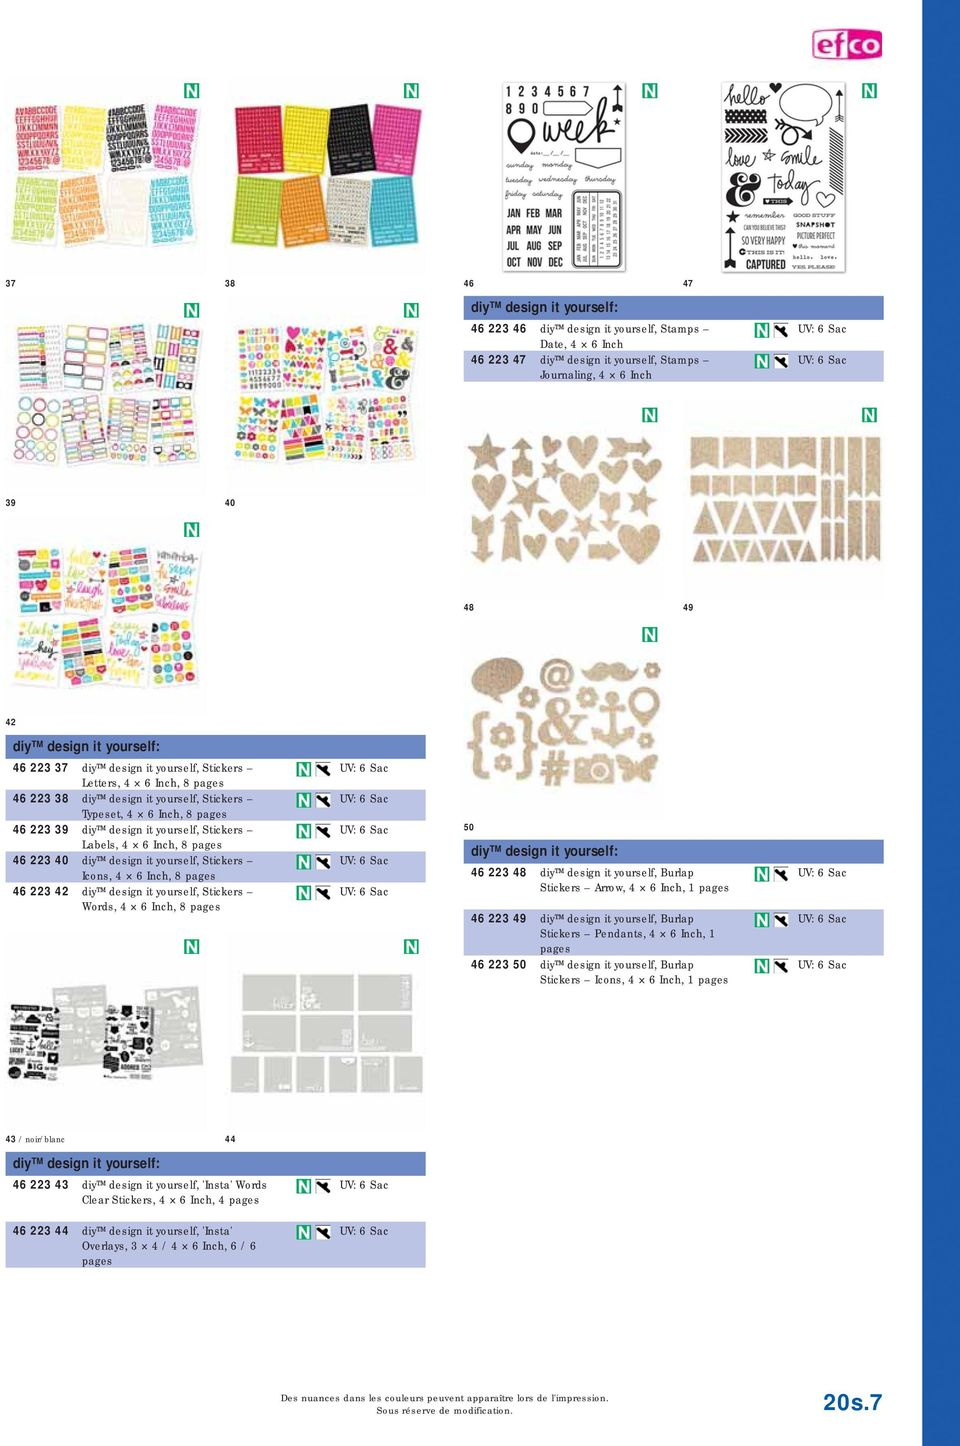 pages 46 223 40 diy design it yourself, Stickers Icons, 4 6 Inch, 8 pages 46 223 42 diy design it yourself, Stickers Words, 4 6 Inch, 8 pages 50 diy design it yourself: 46 223 48 diy design it